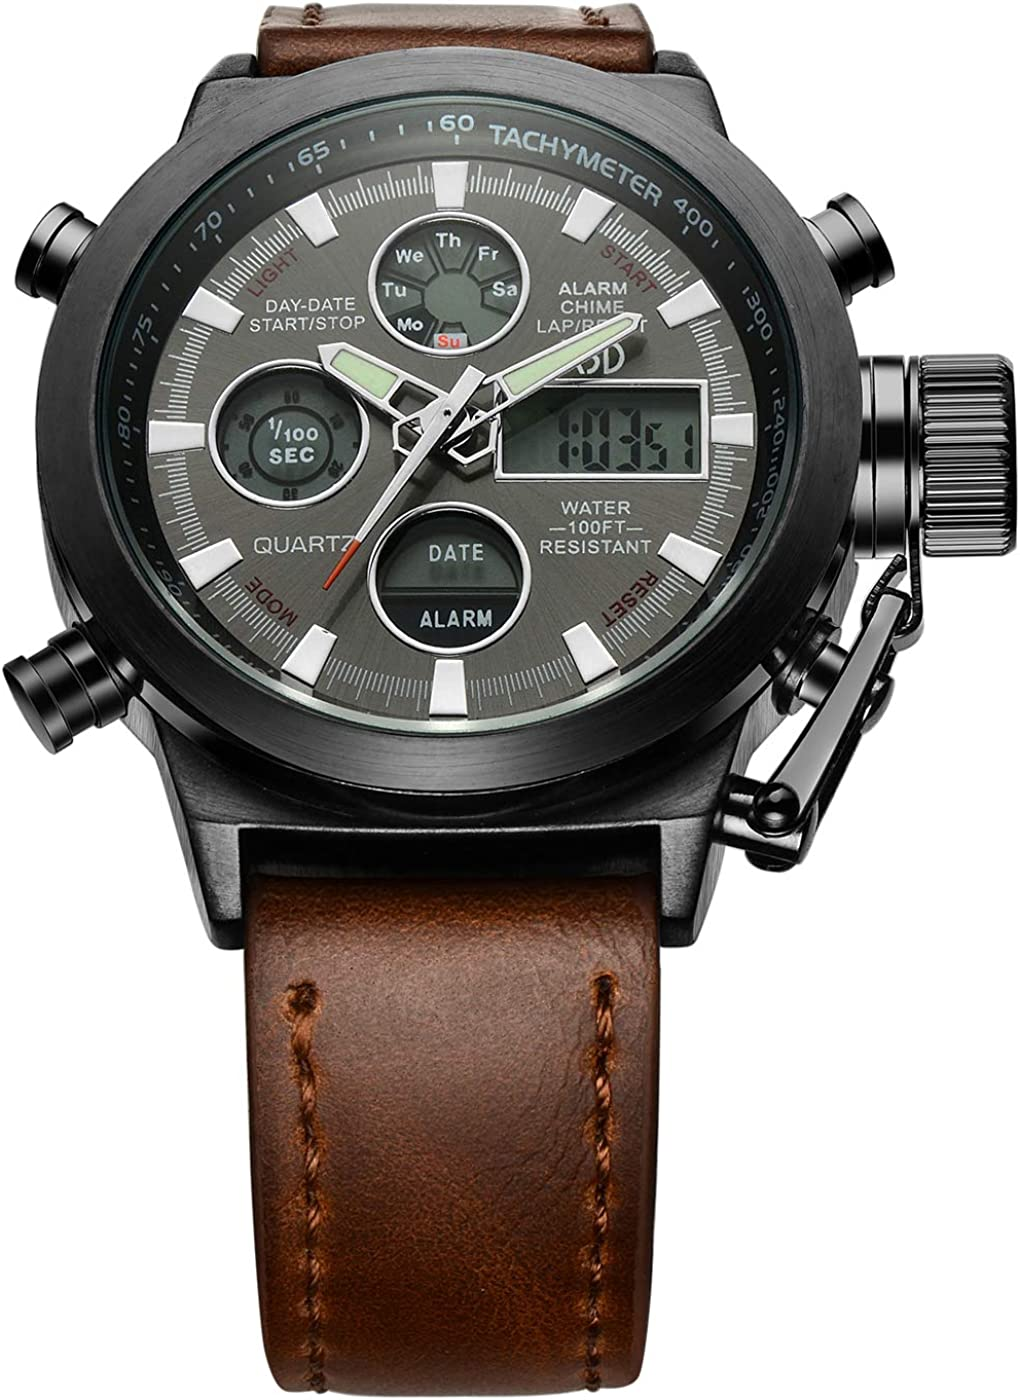 Golden Hour Fashion Brown Leather Men s Military Watch Waterproof Analog Digital Sports Watches for Men